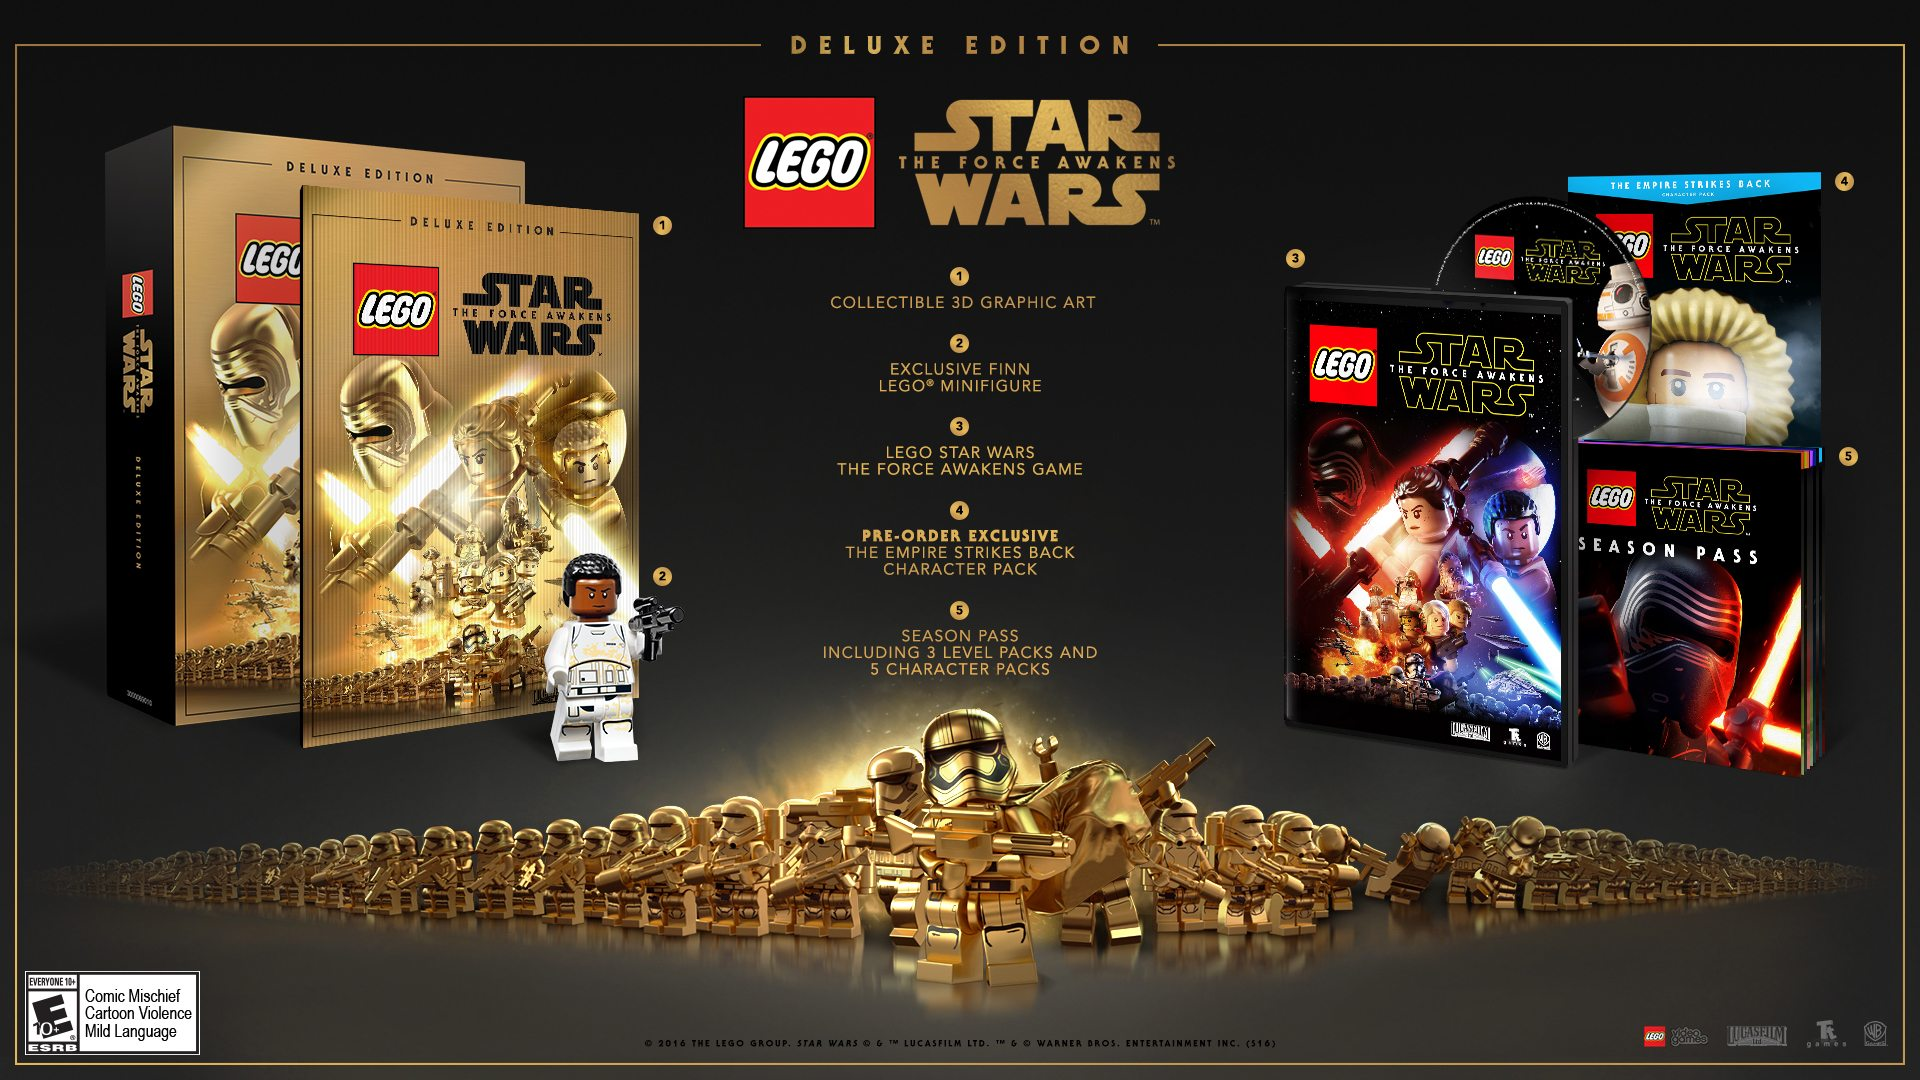 LEGO Star Wars: The Force Awakens Season Pass Details Announced